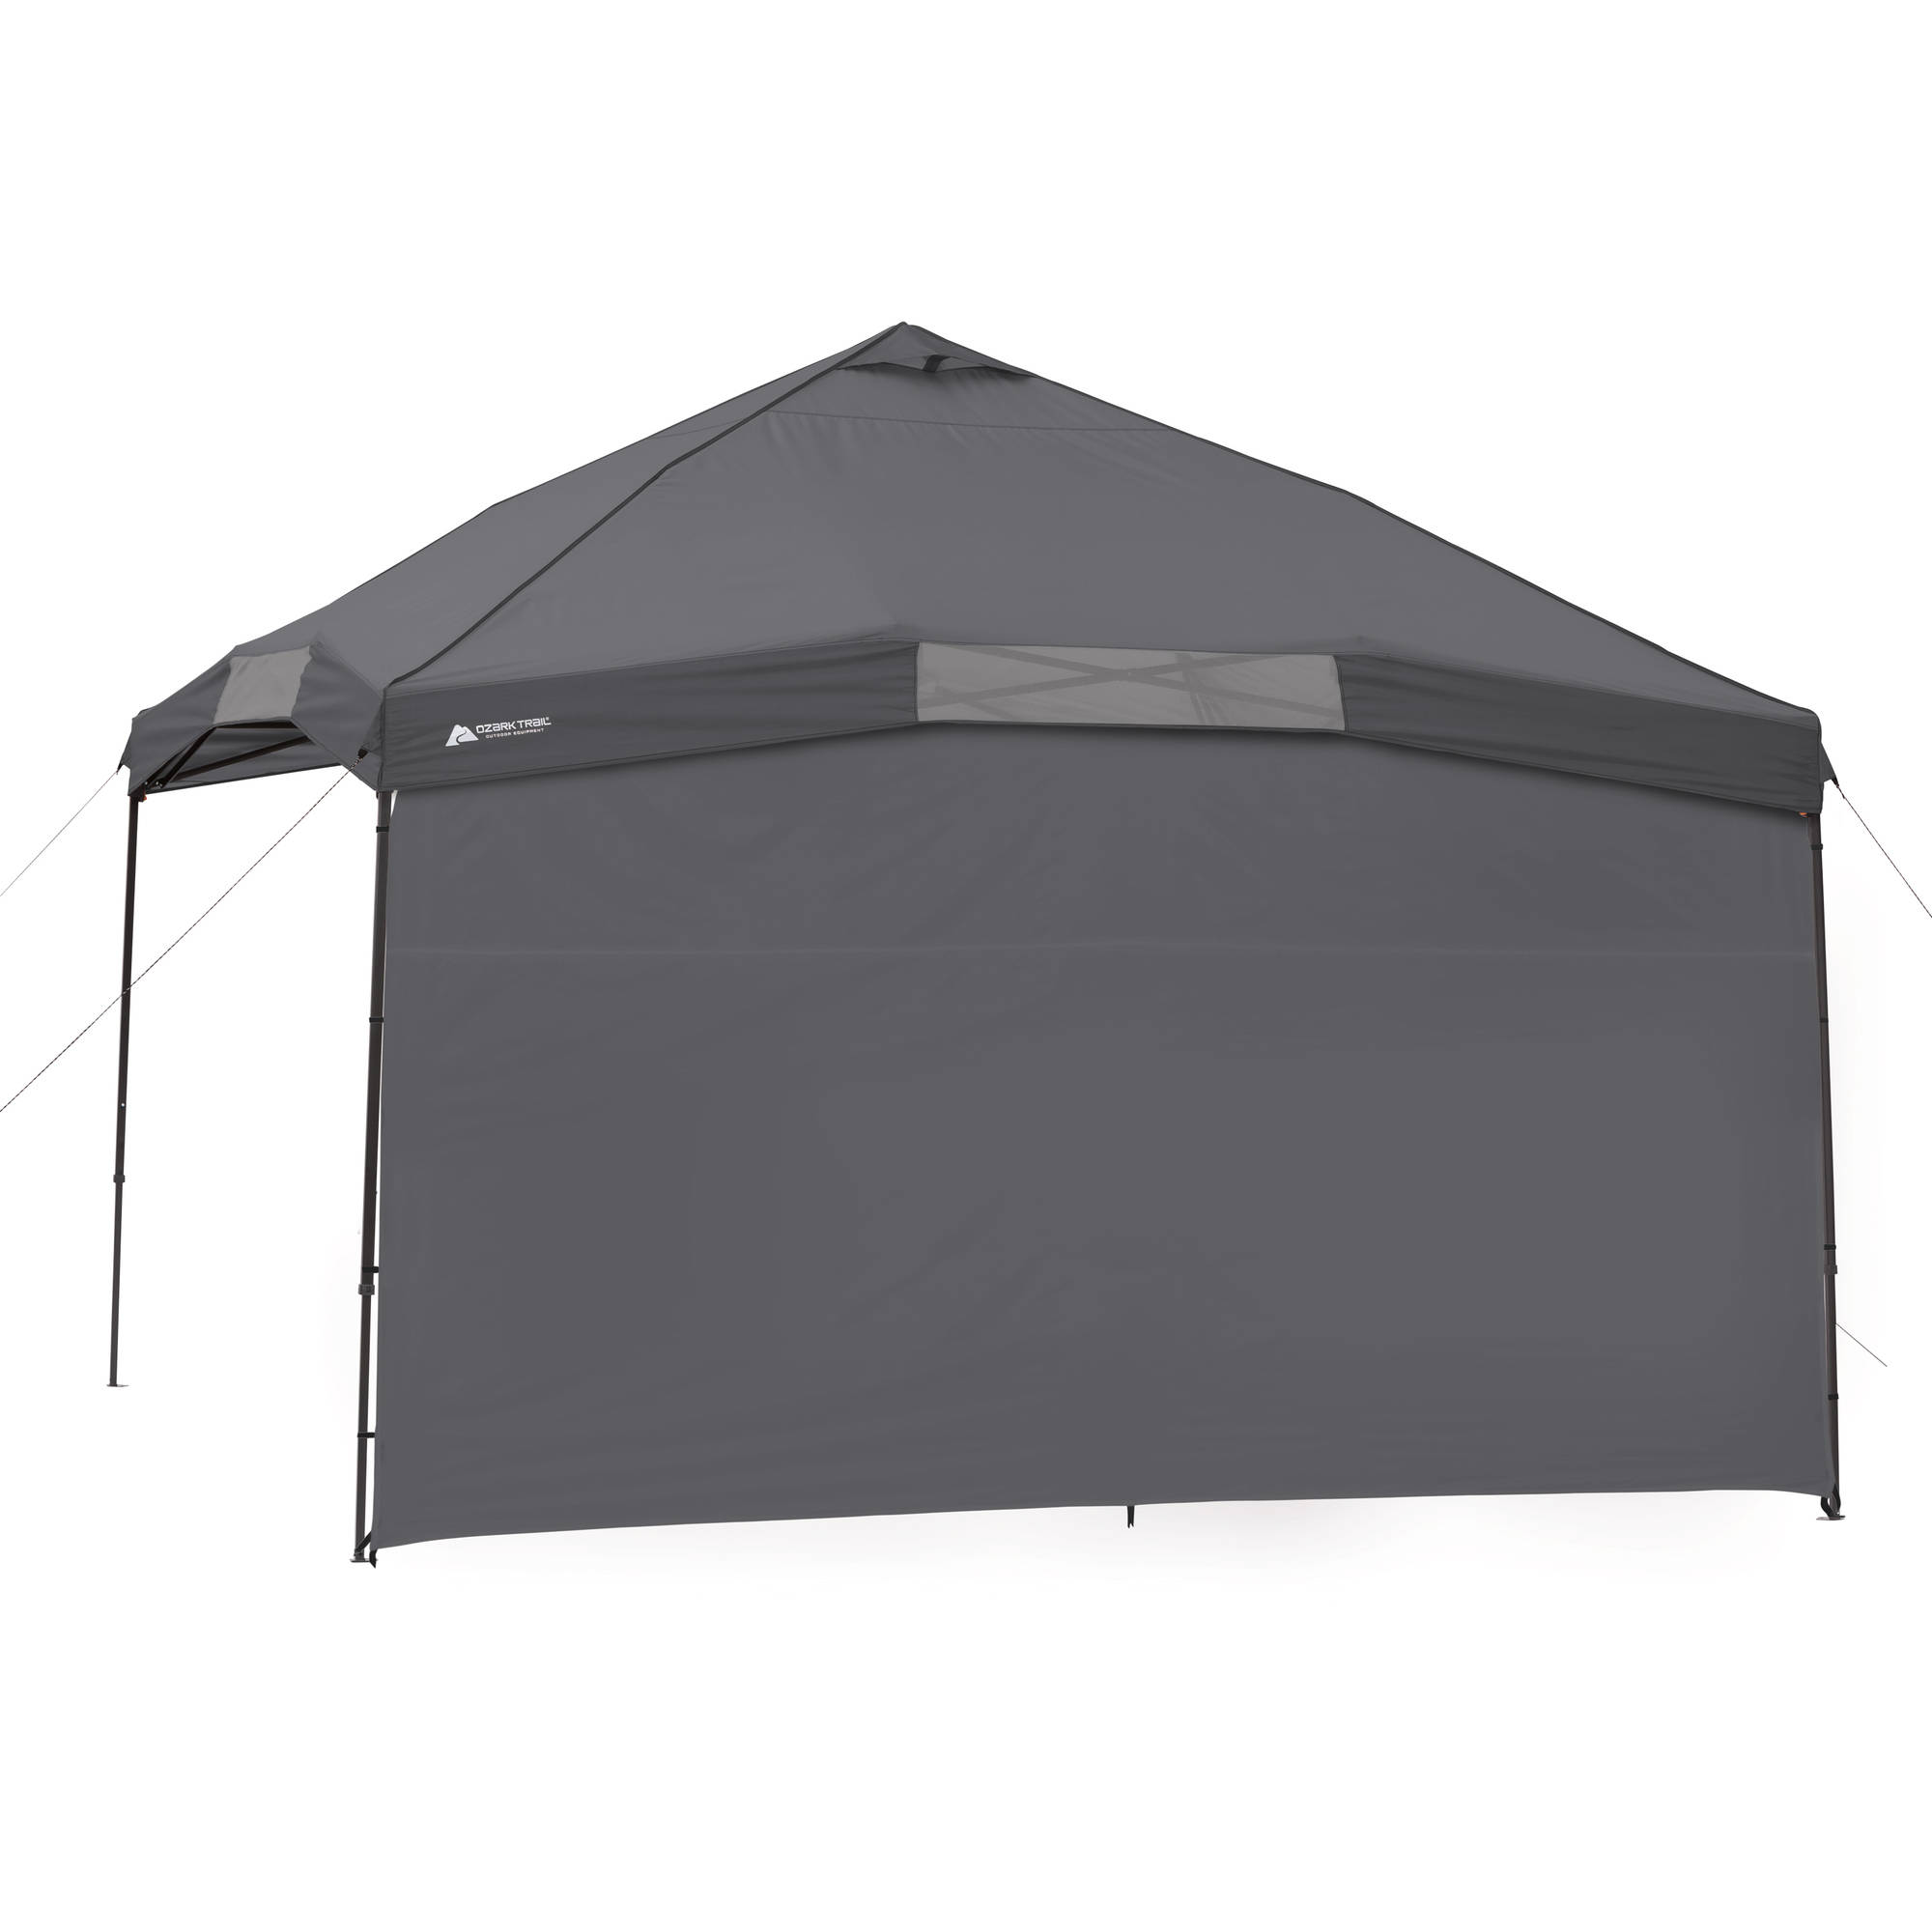 Ozark Trail 12u0027 x 12u0027 Gazebo Sun Wall Dark Grey  sc 1 st  Walmart : zhengte canopy replacement parts - memphite.com